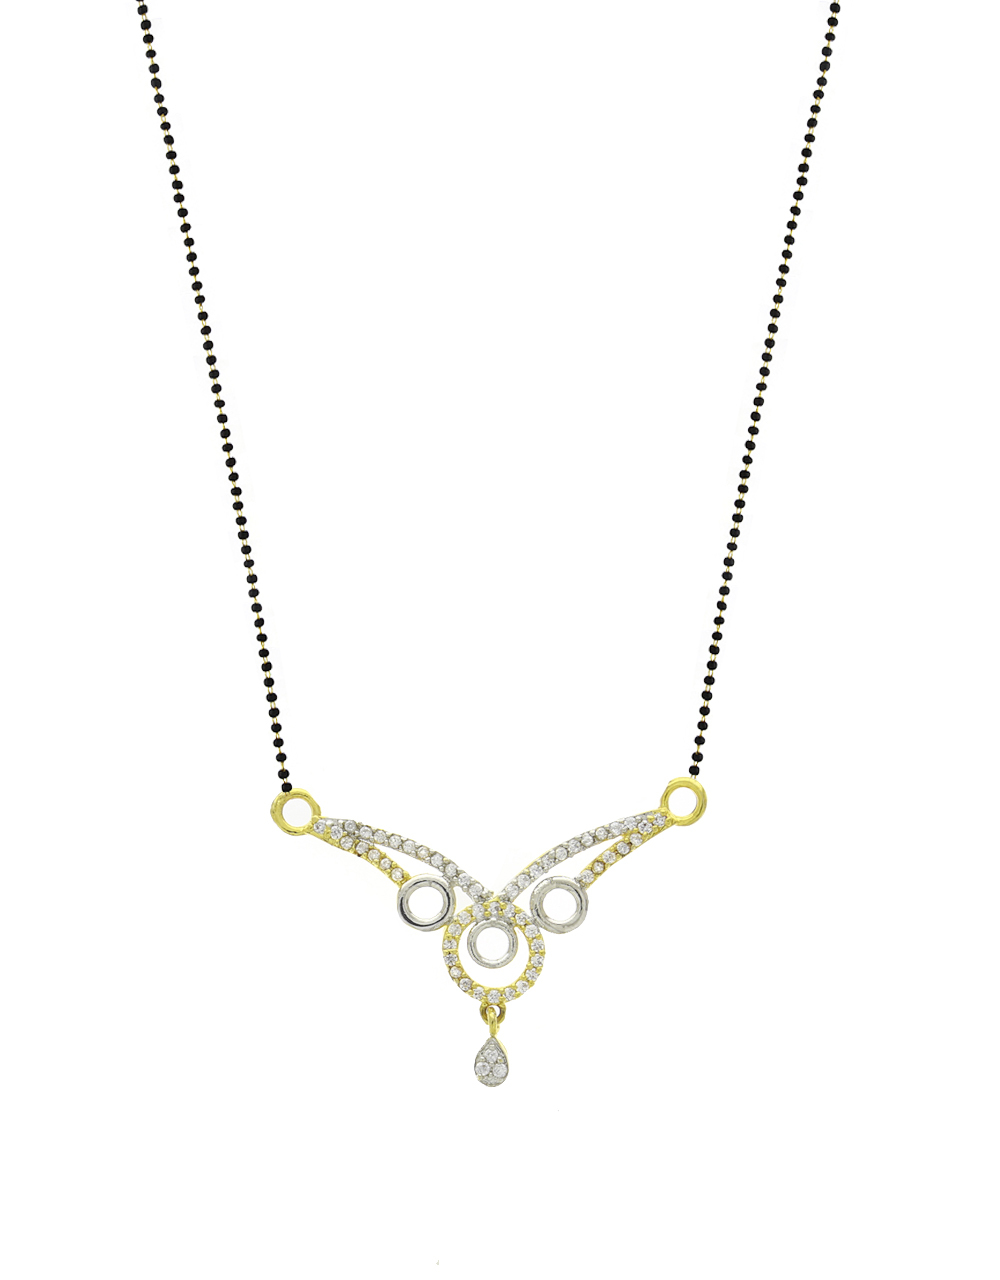 Two-Tone Fancy American Diamond Studded Short Mangalsutra for Women